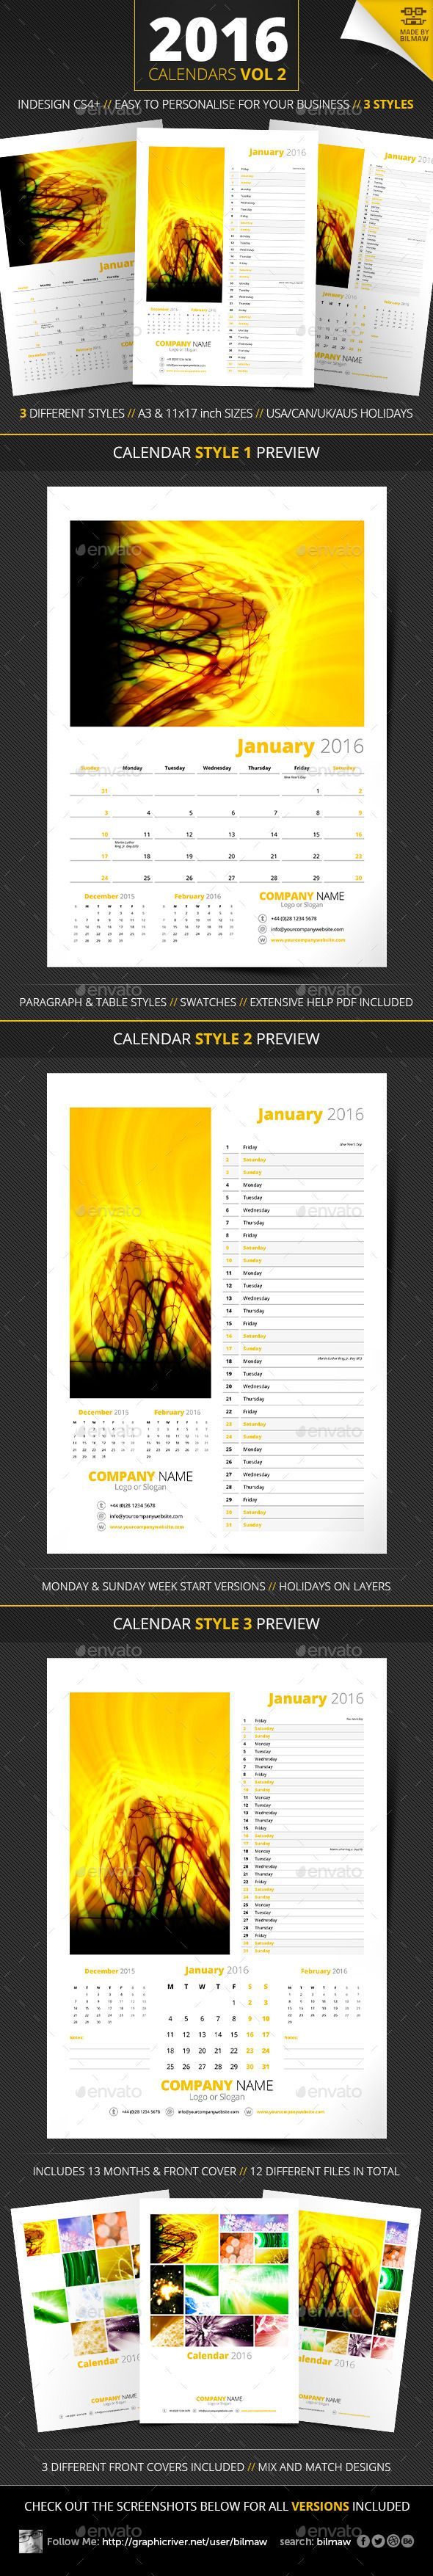 Calendars Vol 2. Templates includes 3 modern calendar designs, in all the sizes and formats you could need.